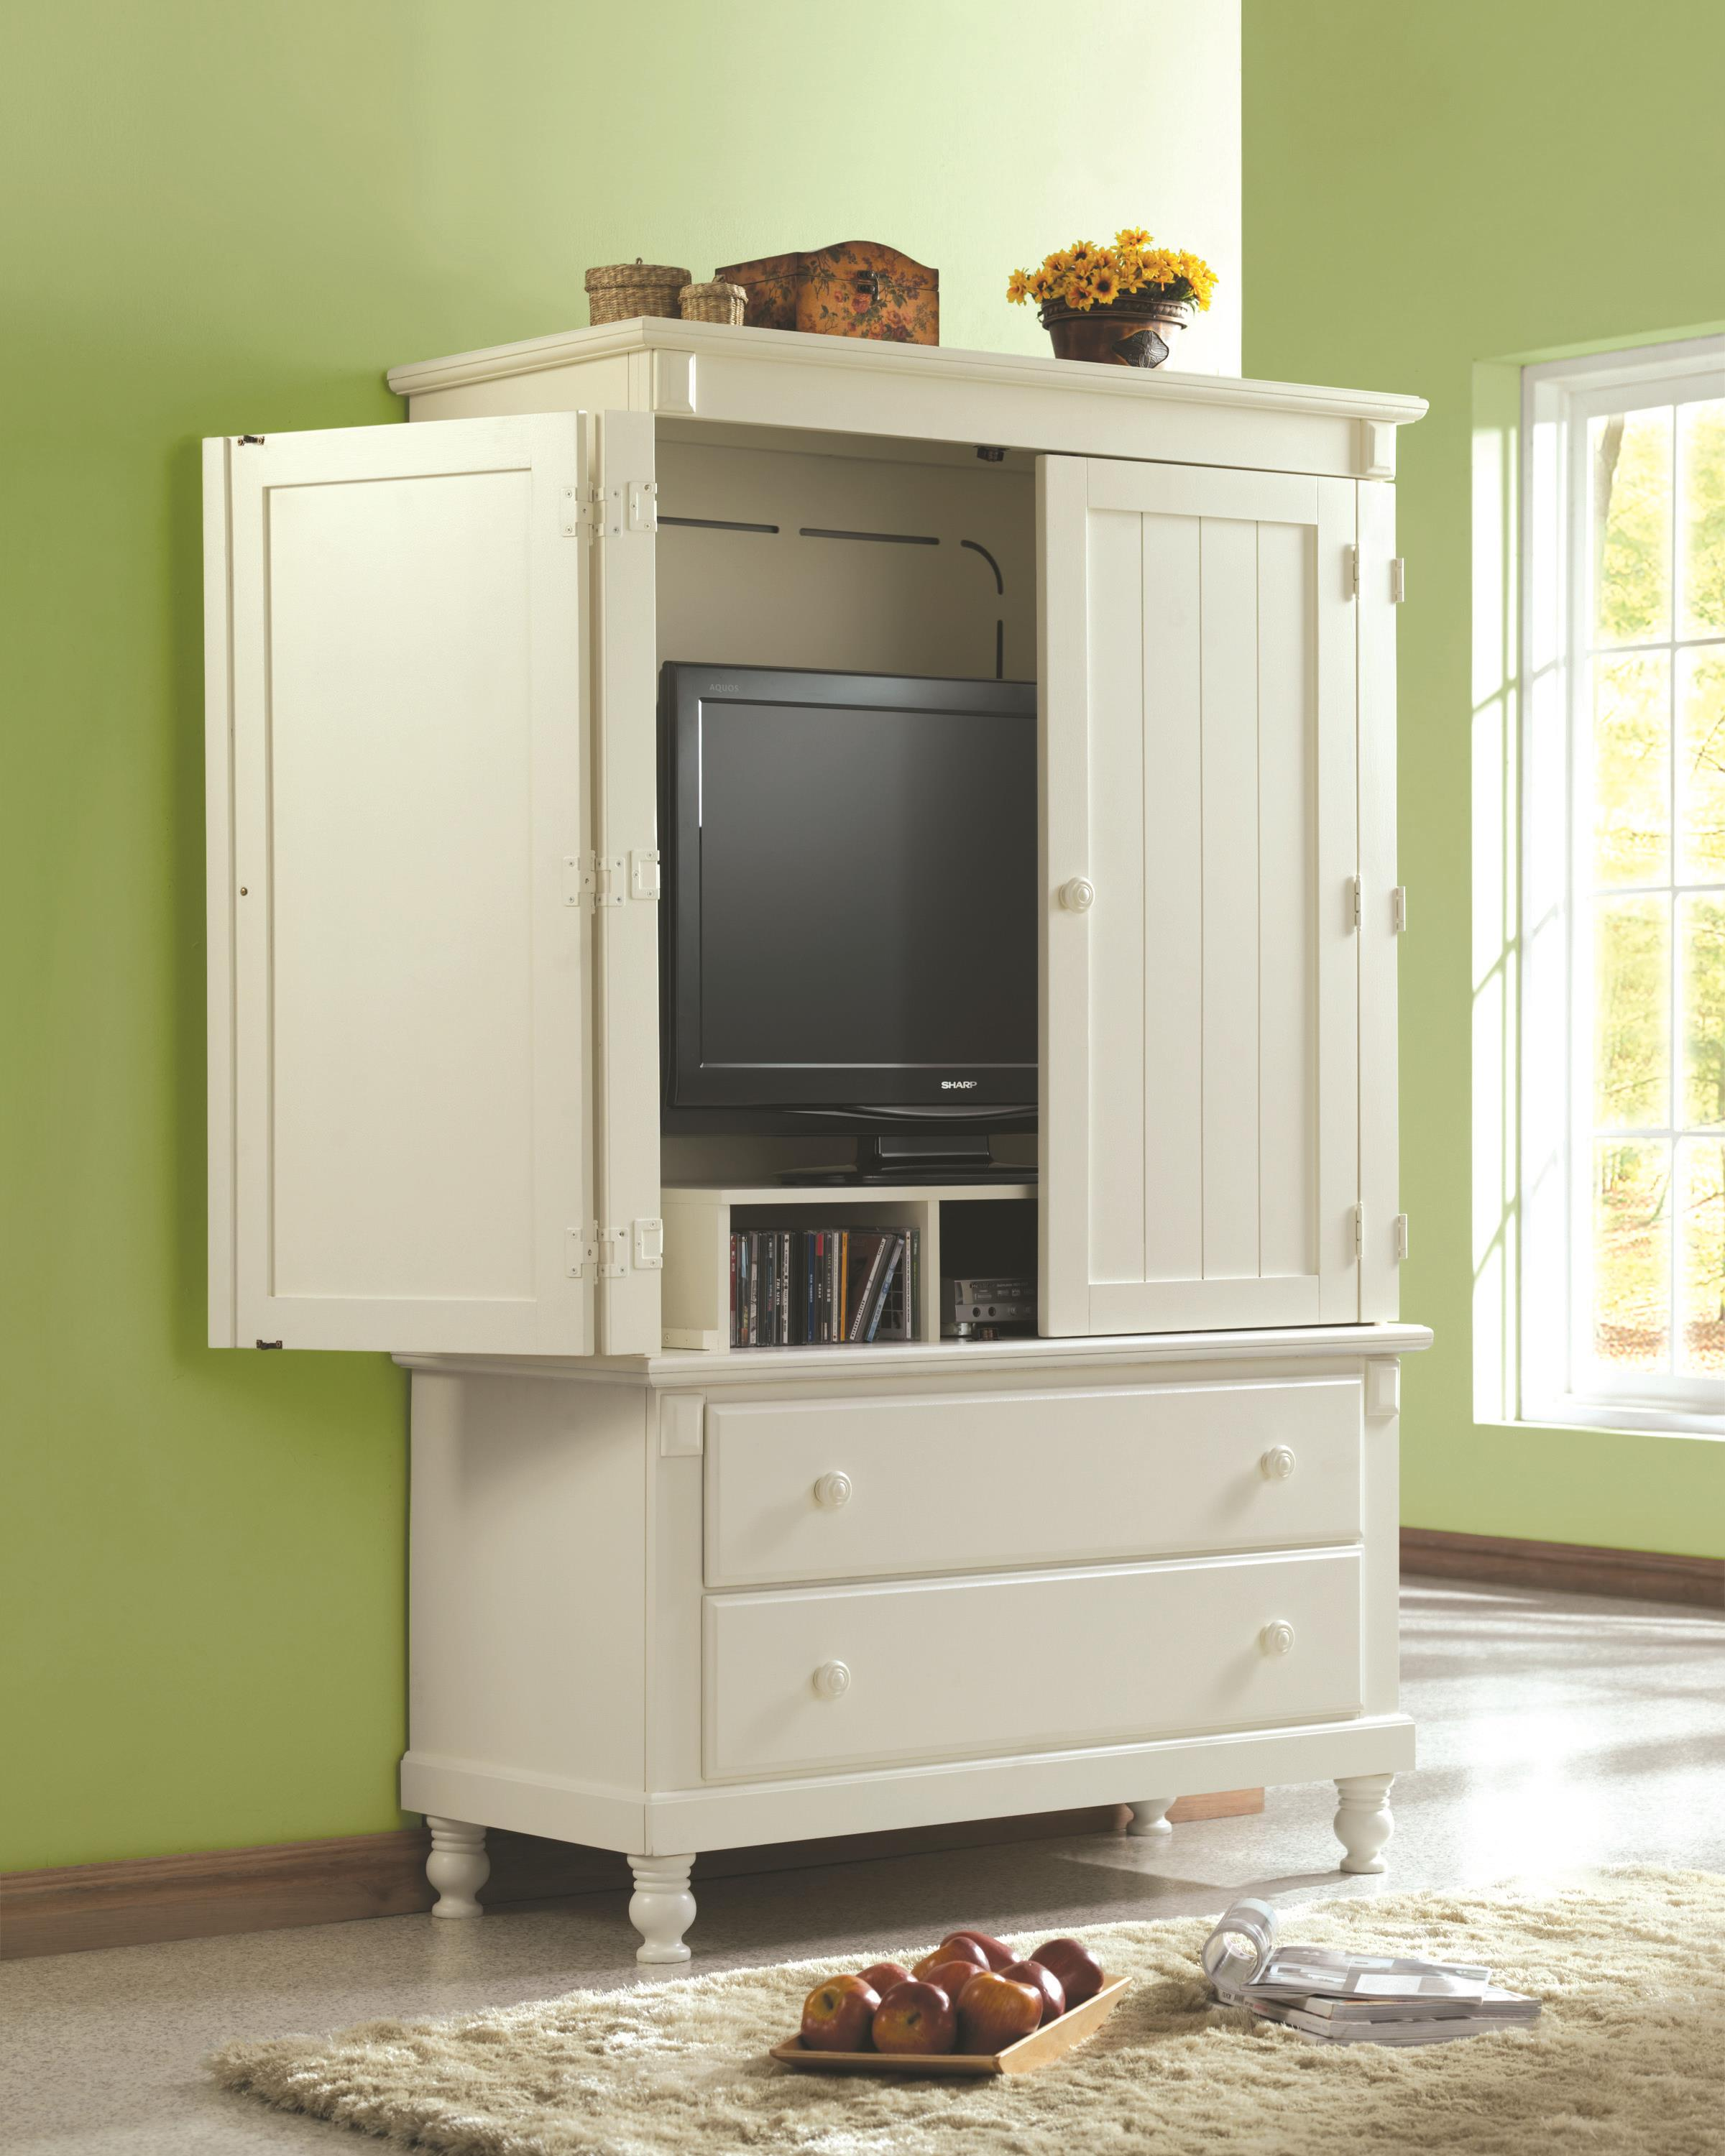 simple white tv hutch with doors and double drawers plus fur rug